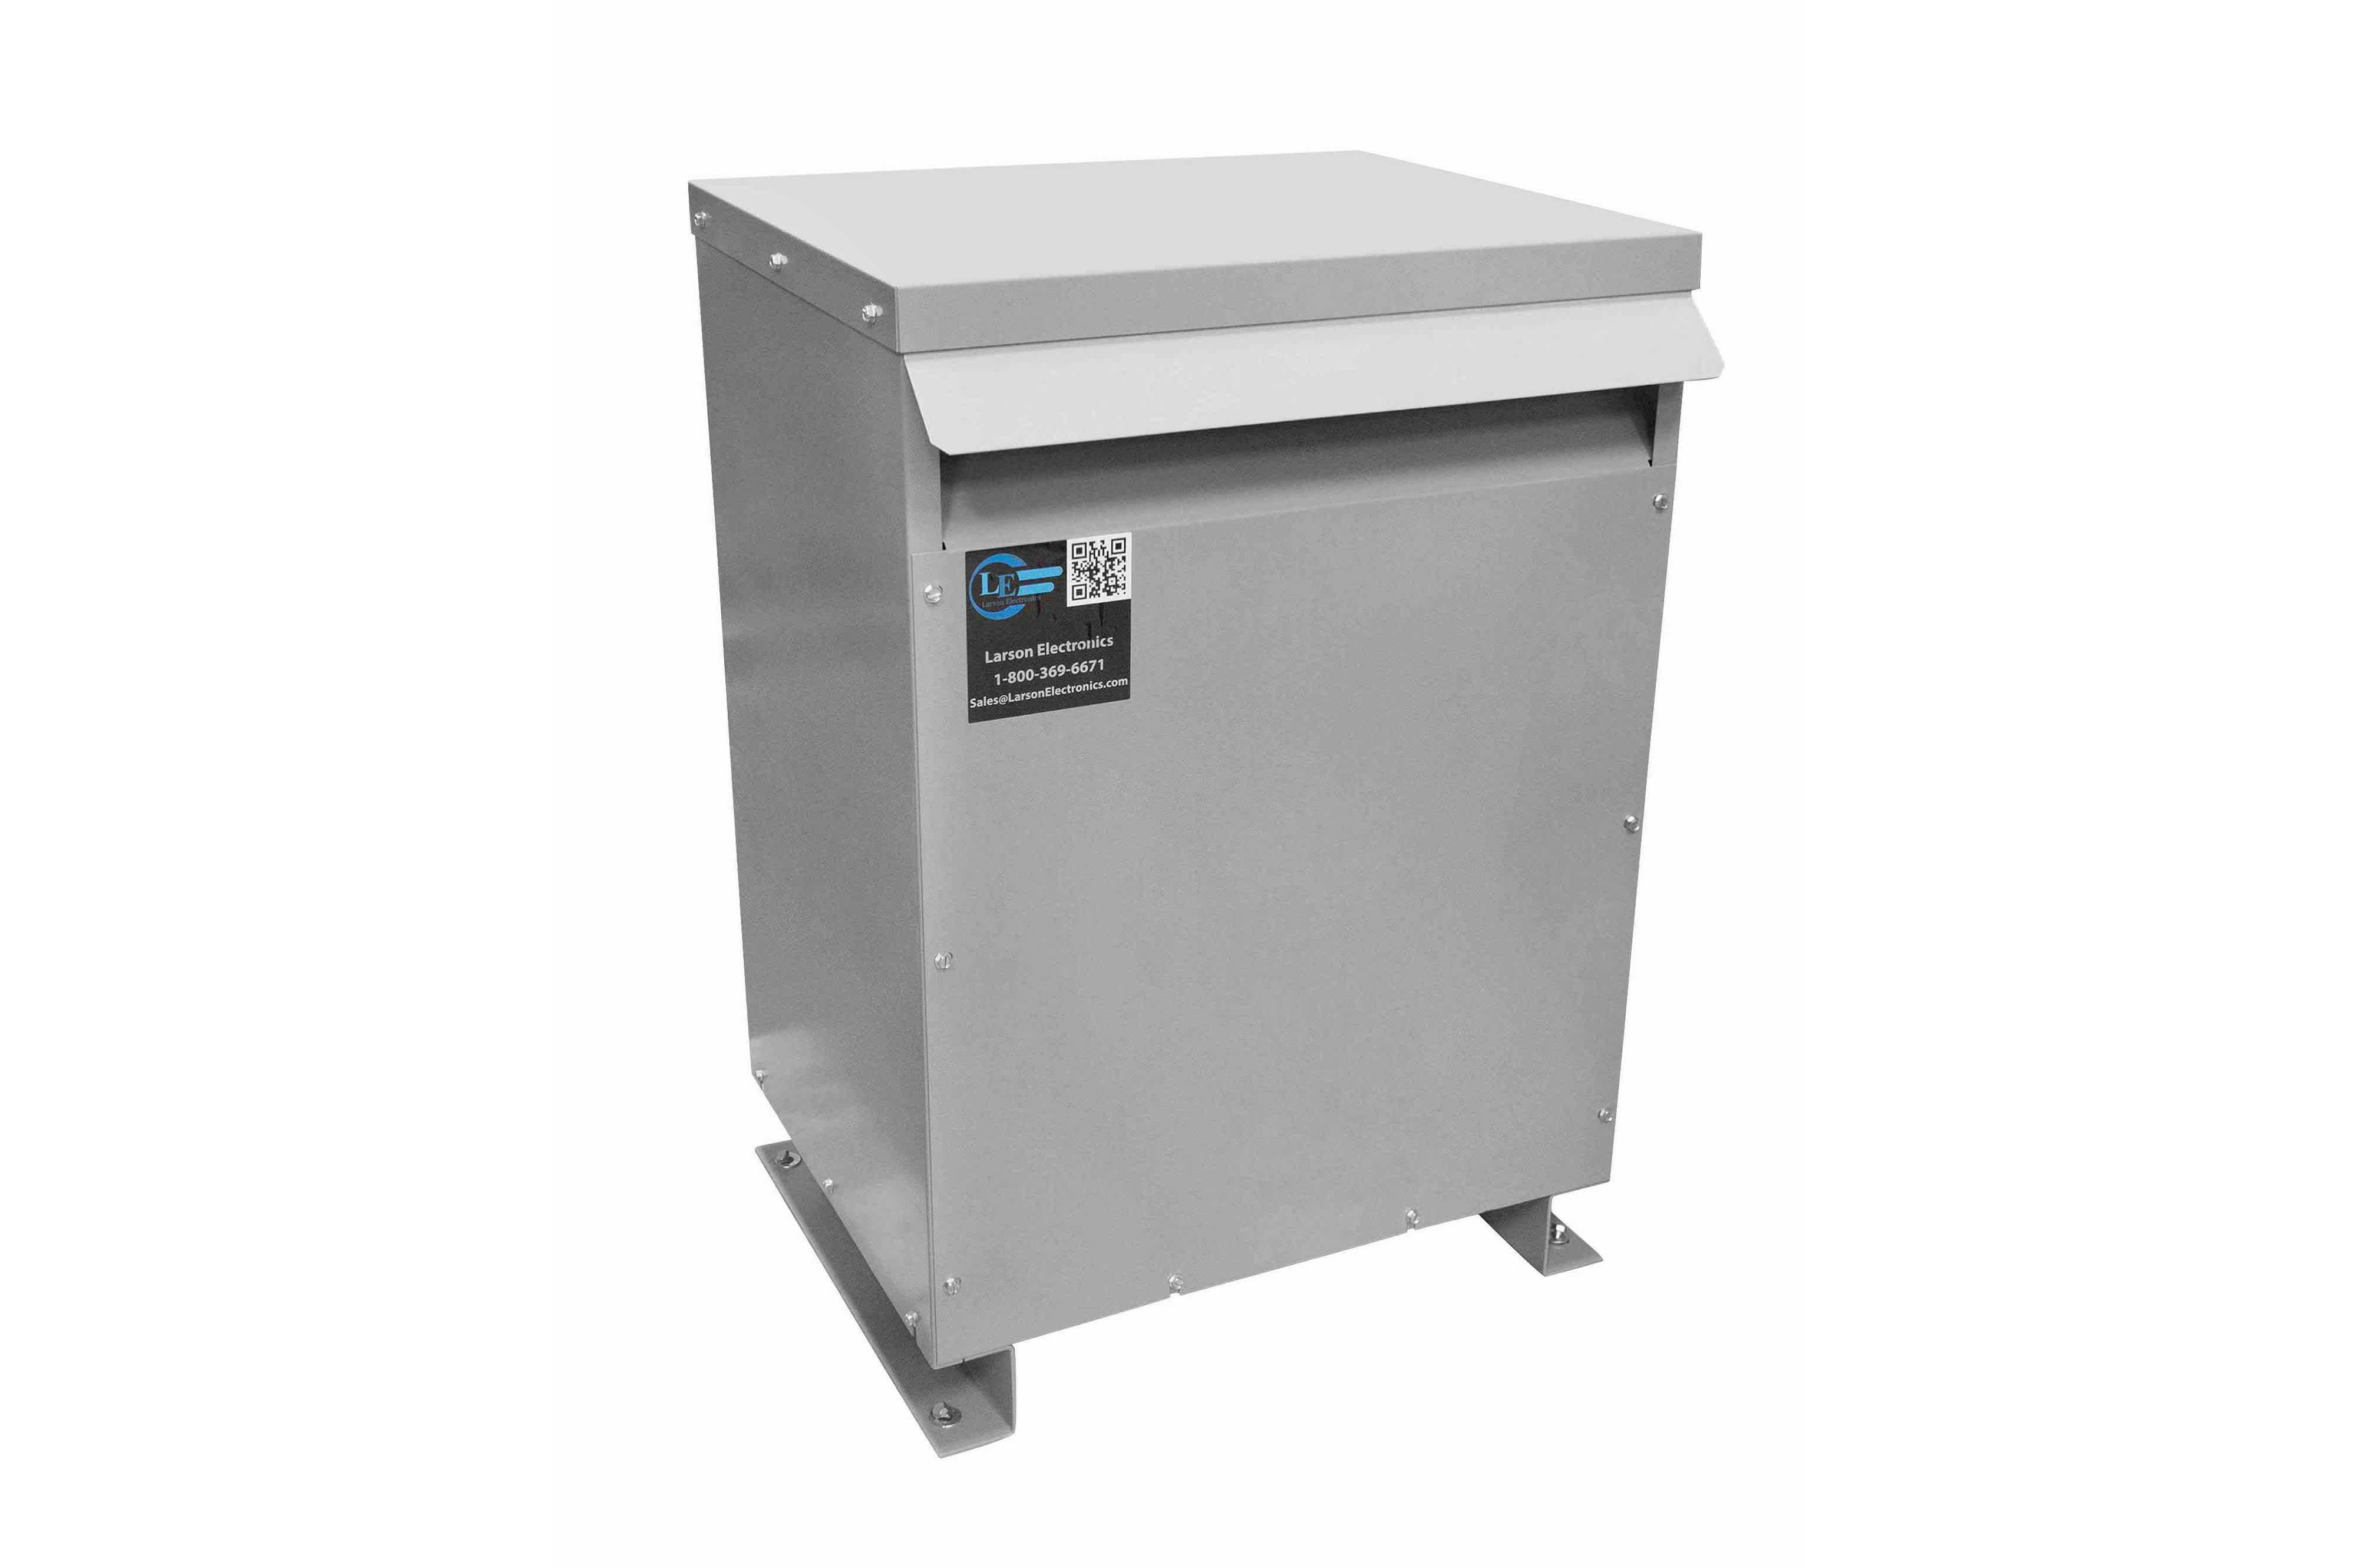 150 kVA 3PH Isolation Transformer, 575V Delta Primary, 415V Delta Secondary, N3R, Ventilated, 60 Hz